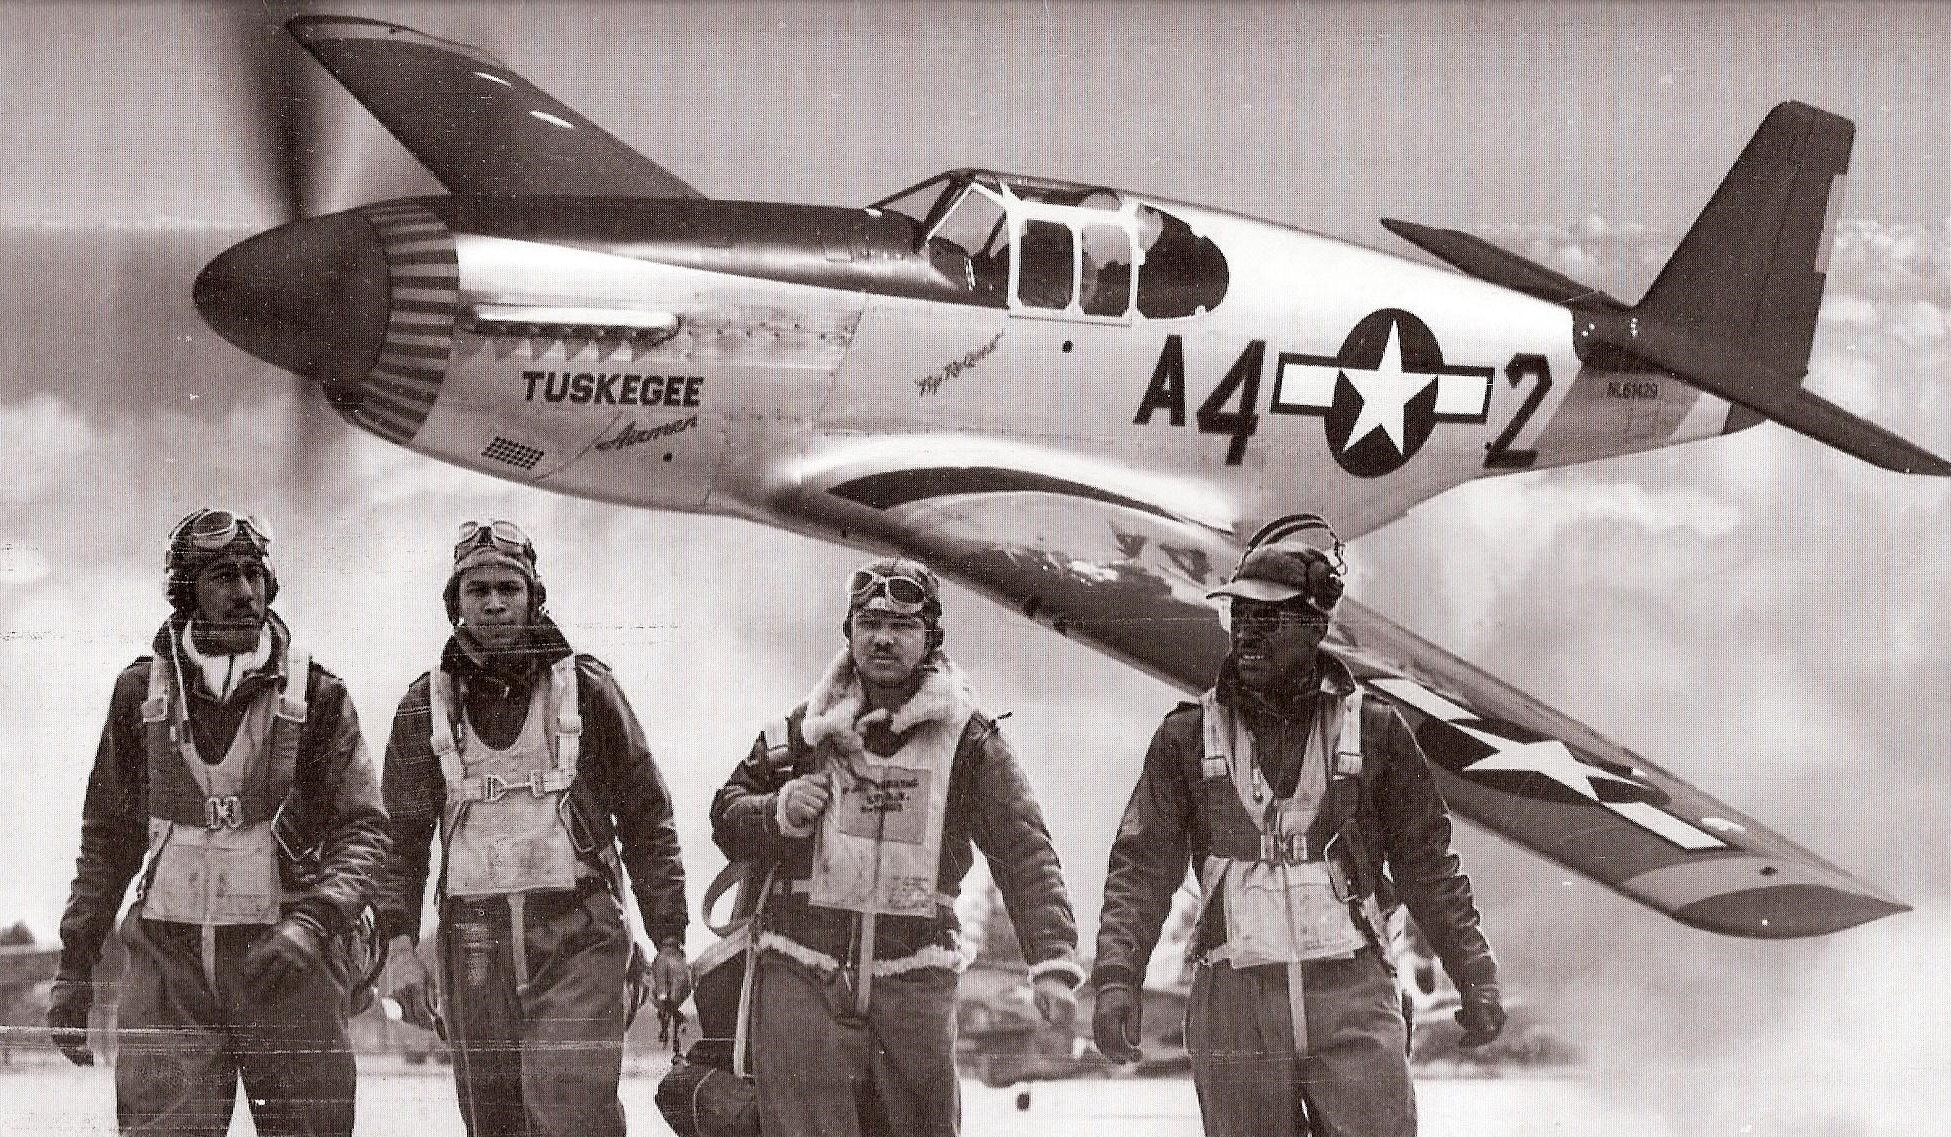 WWII Event: Tuskegee Airmen